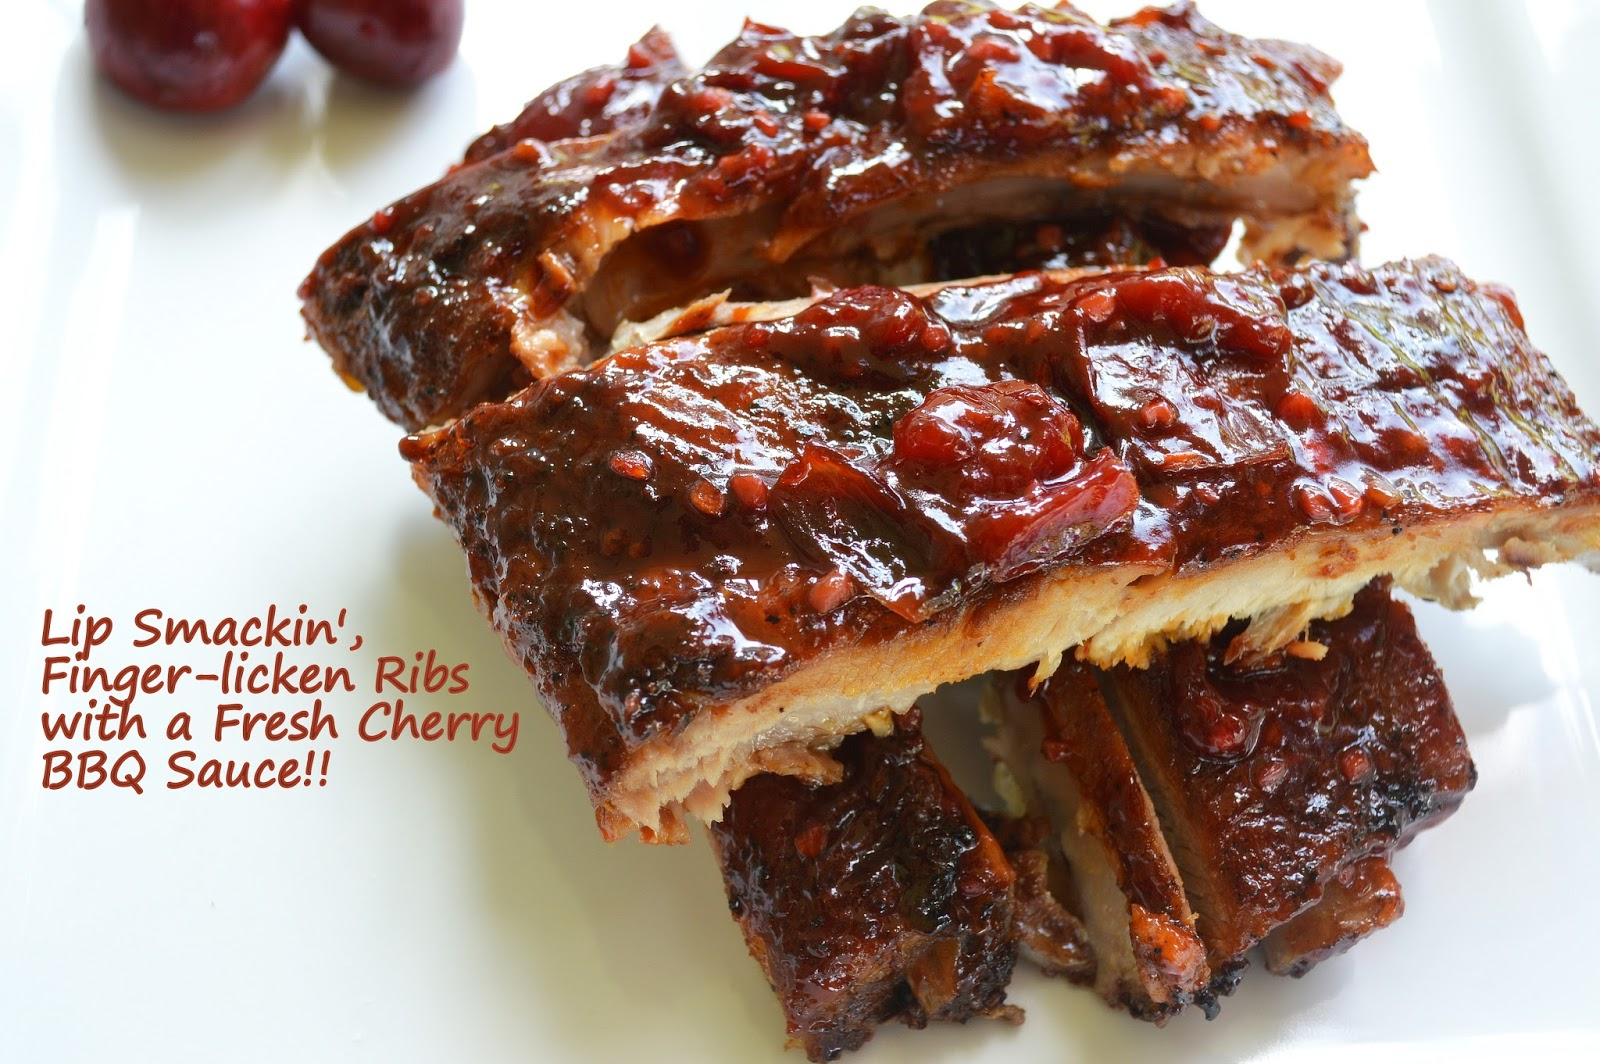 Grilled Ribs With Cherry Cola Barbecue Sauce Recipes — Dishmaps